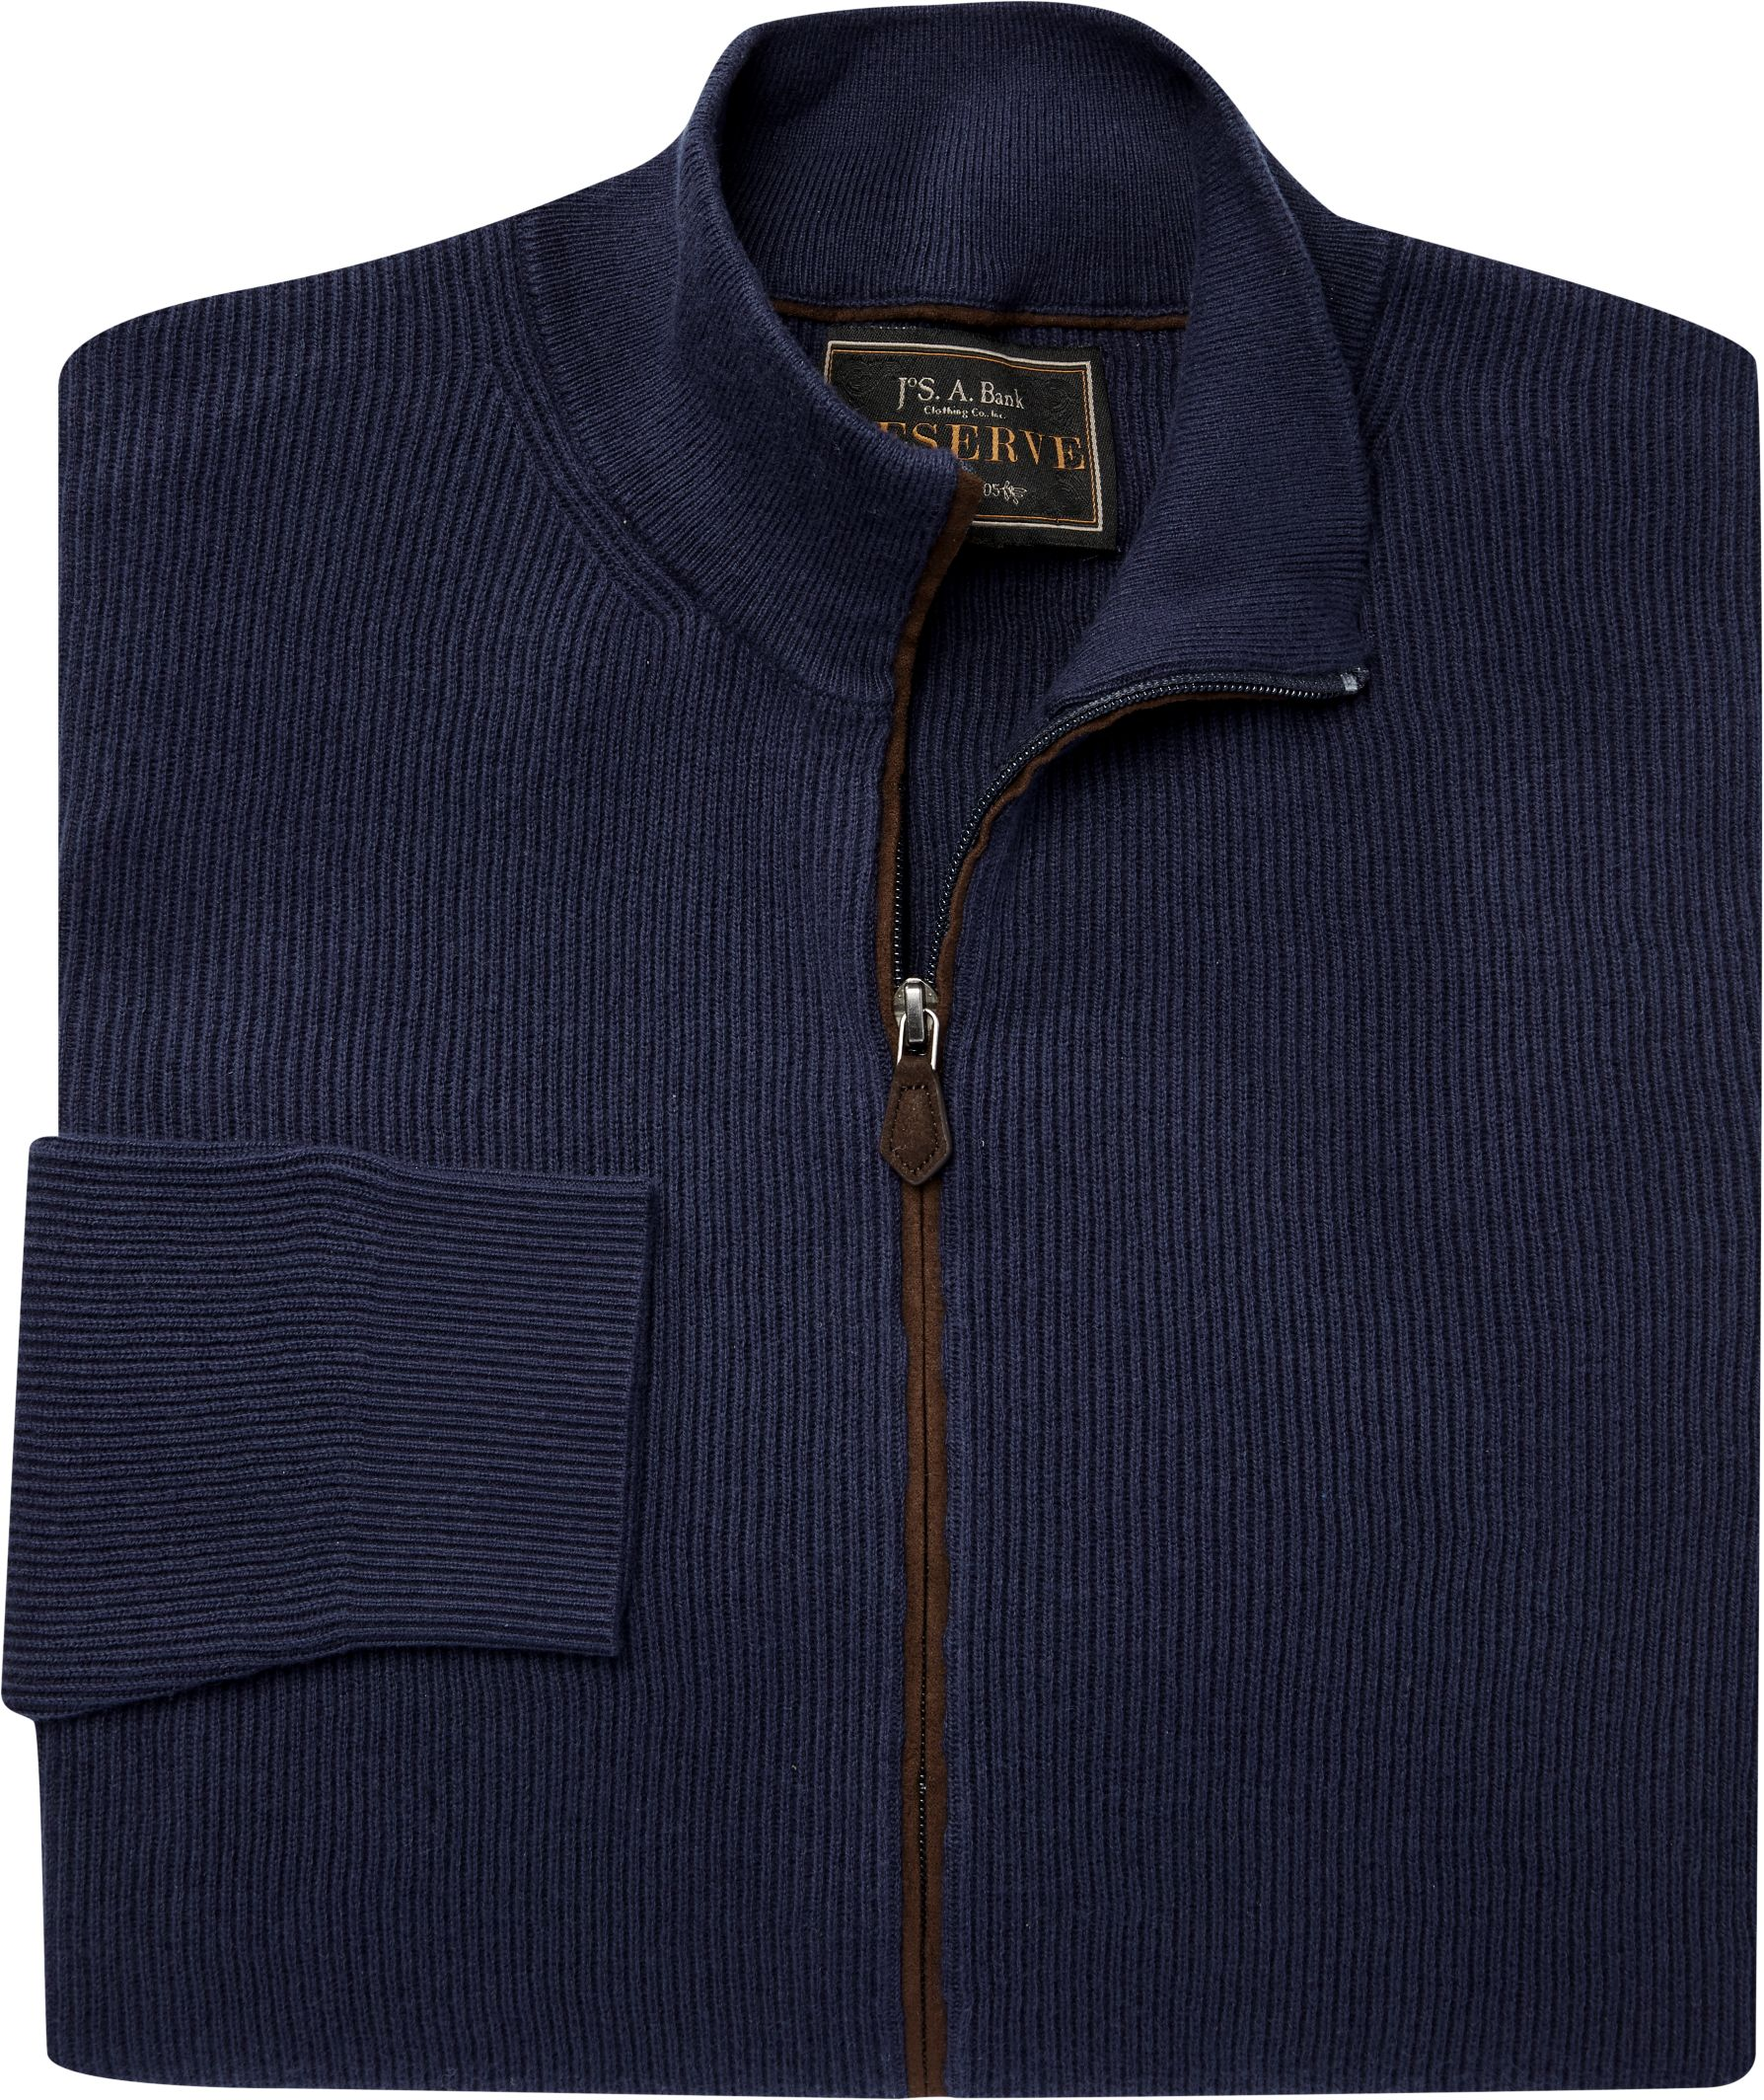 Cotton Sweaters | Men's Sweaters | JoS. A. Bank Clothiers